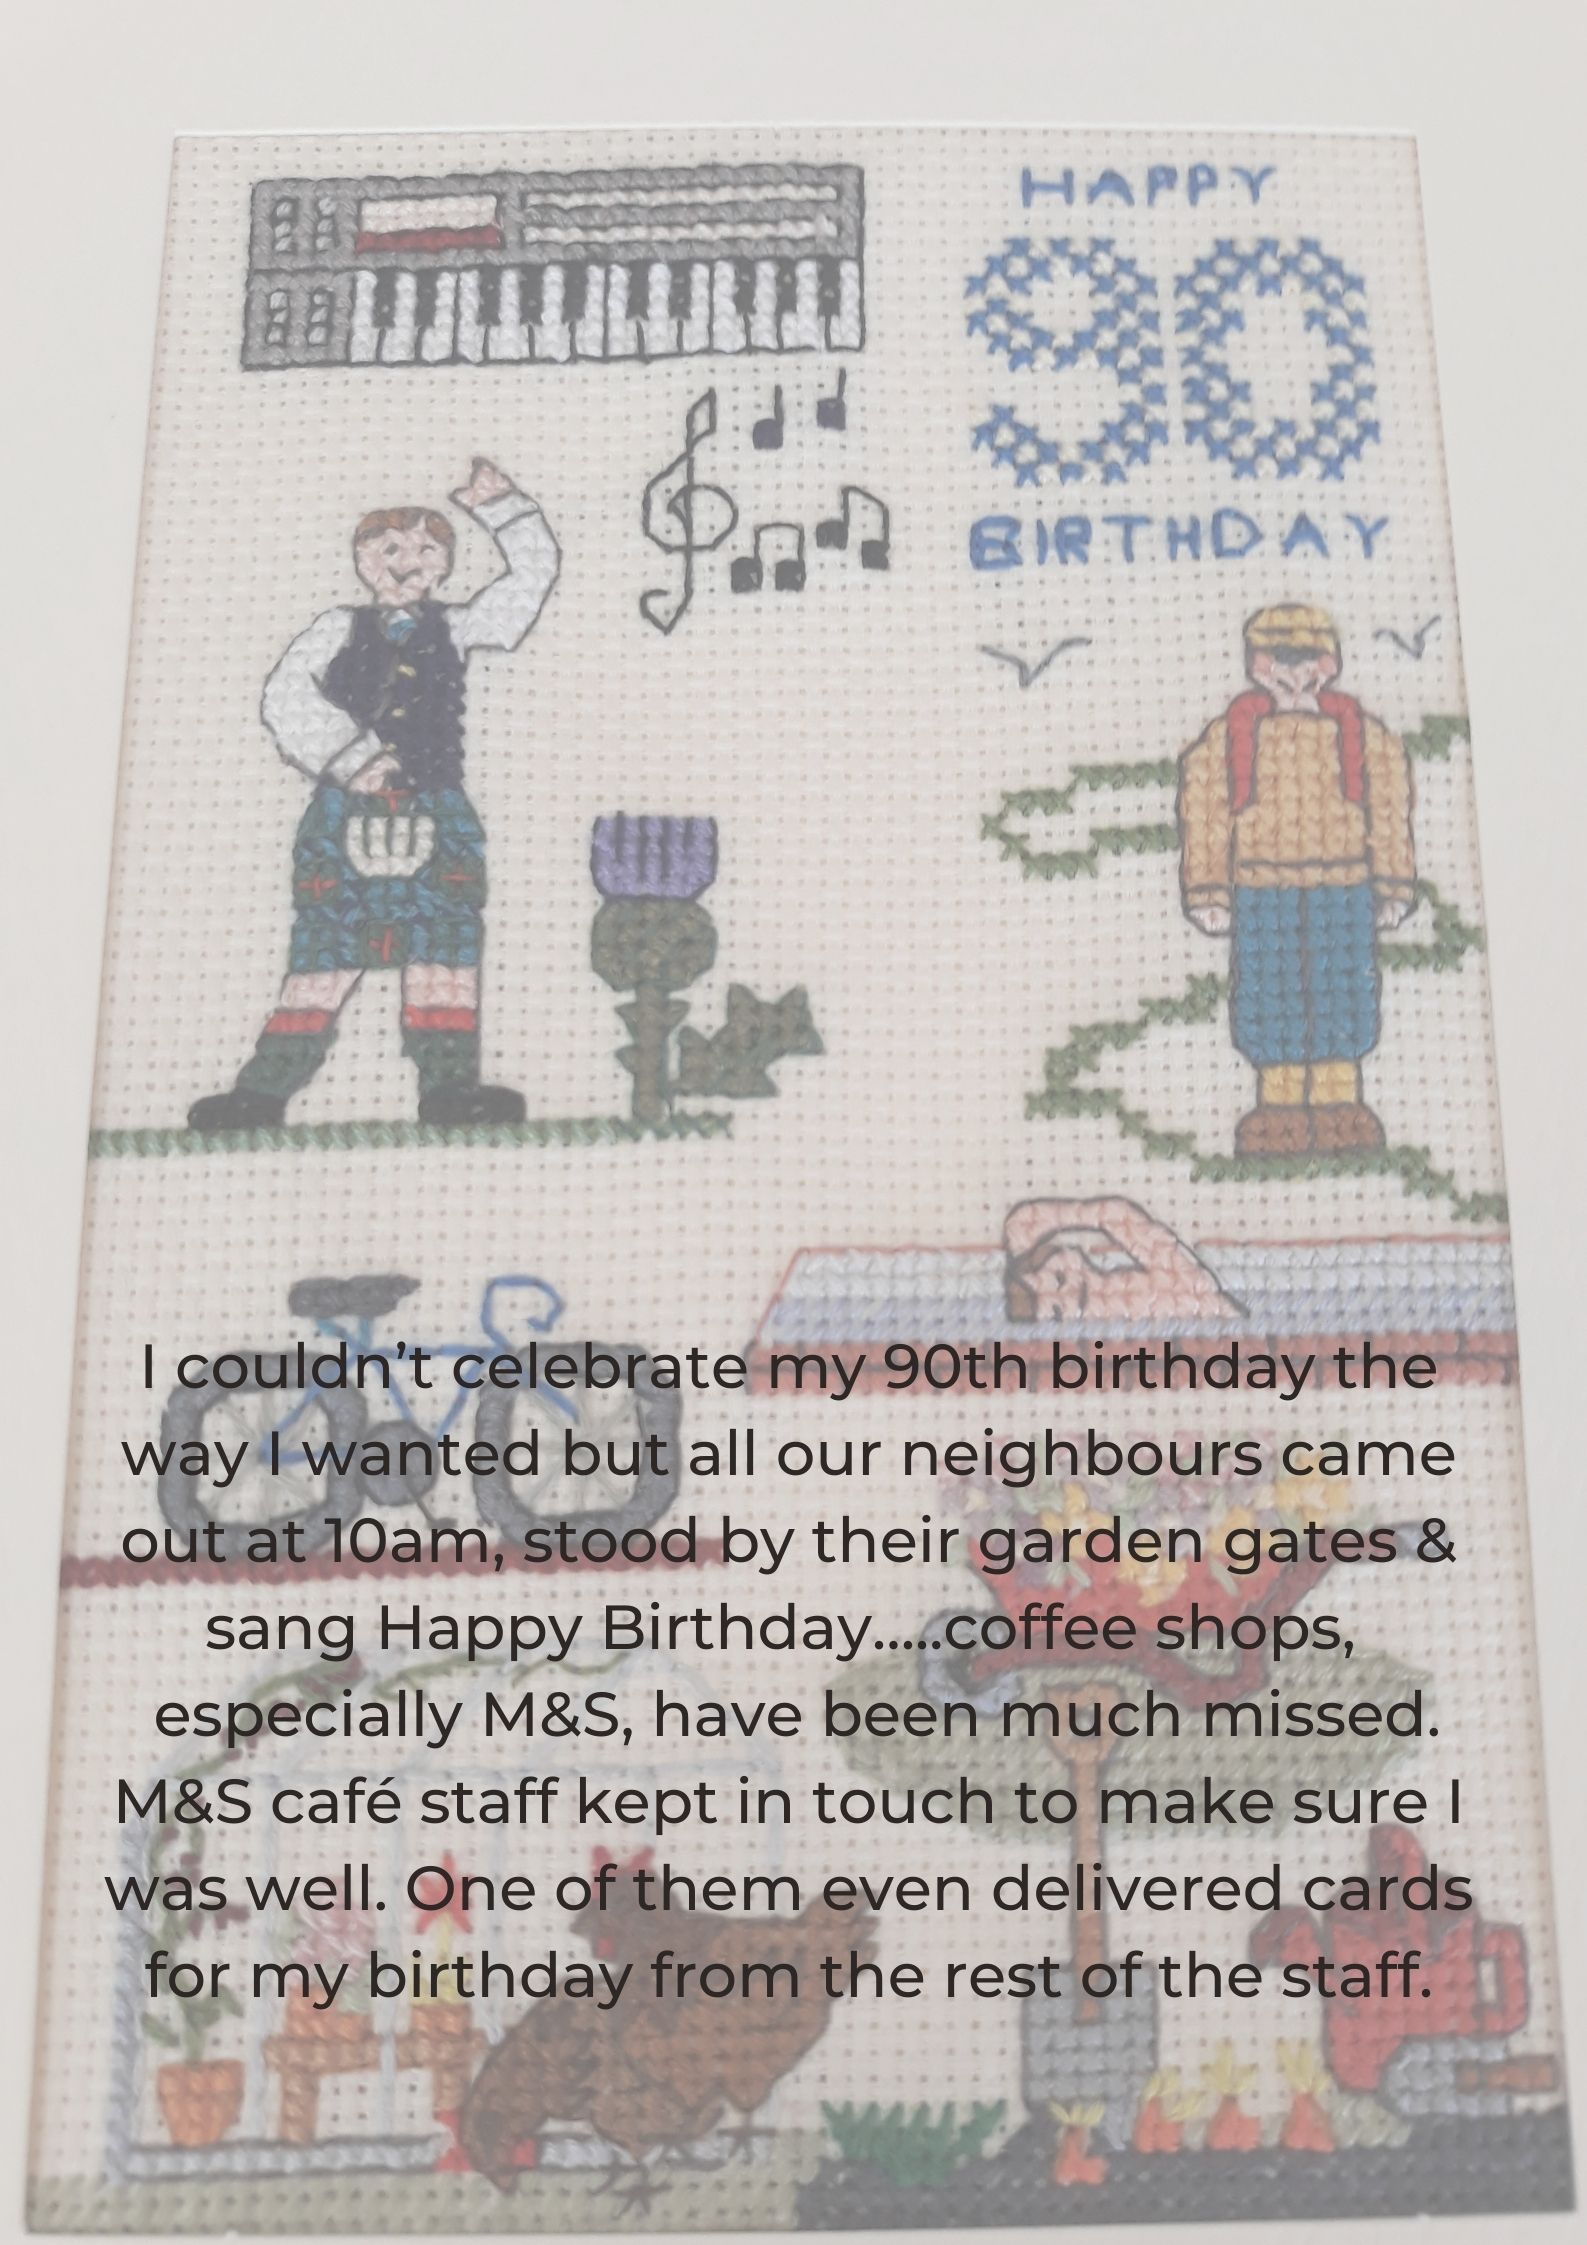 I couldn't celebrate my 90th birthday the way I wanted but all our neighbours came out at 10am, stood by their garden gates & sang Happy Birthday…..coffee shops,  especially M&S, have been much missed. M&S café staff kept in touch to make sure I was well. One of them even delivered cards for my birthday from the rest of the staff.